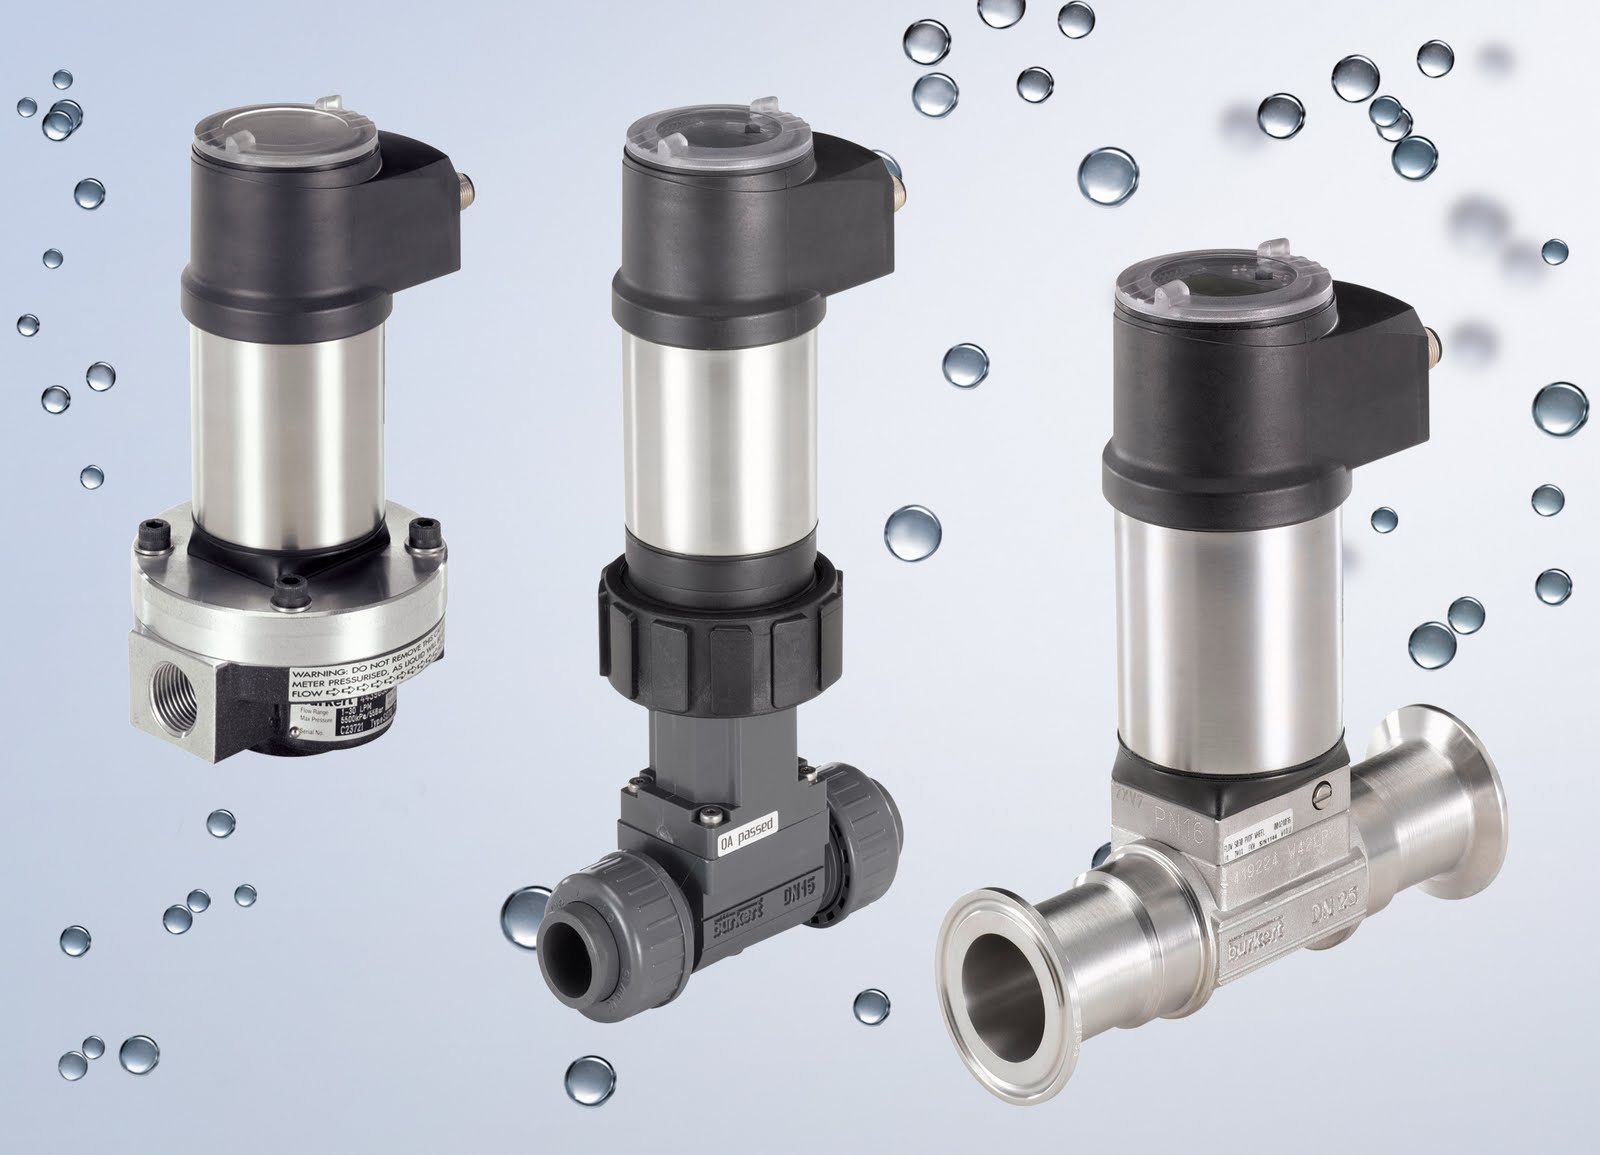 Burkert ELEMENT range of process valves